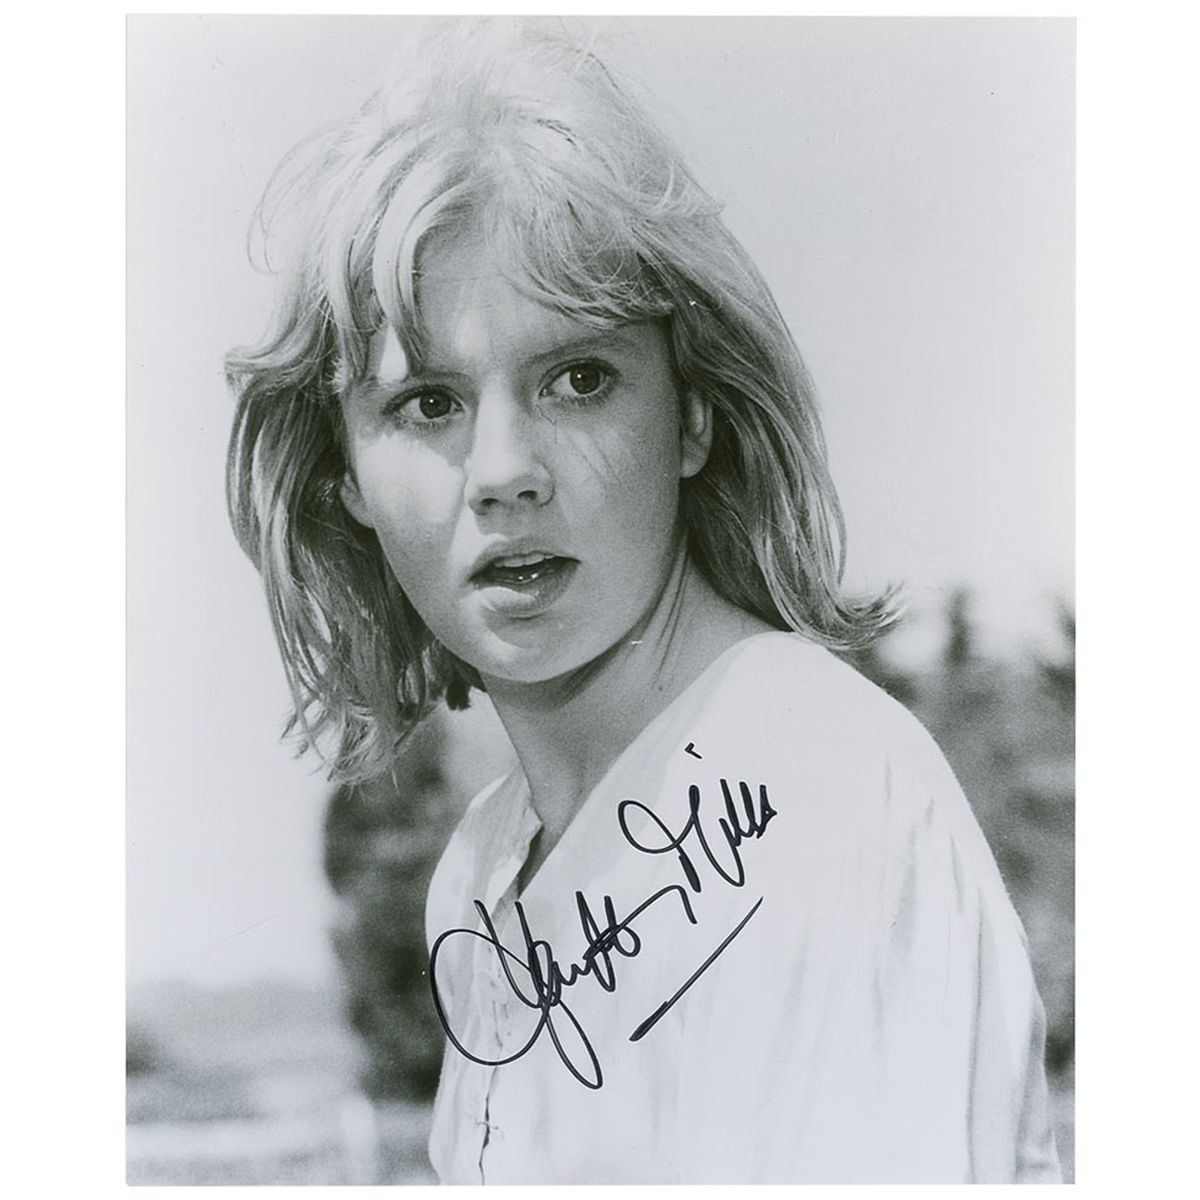 hayley mills parent traphayley mills sister, hayley mills actress, hayley mills film, hayley mills, hayley mills let's get together, hayley mills filmography, hayley mills whistle down the wind, hayley mills summer magic, hayley mills the family way, hayley mills deadly strangers, hayley mills imdb, hayley mills parent trap, hayley mills cancer, hayley mills photos, hayley mills saved by the bell, hayley mills net worth, hayley mills son, hayley mills midsomer murders, hayley mills pollyanna